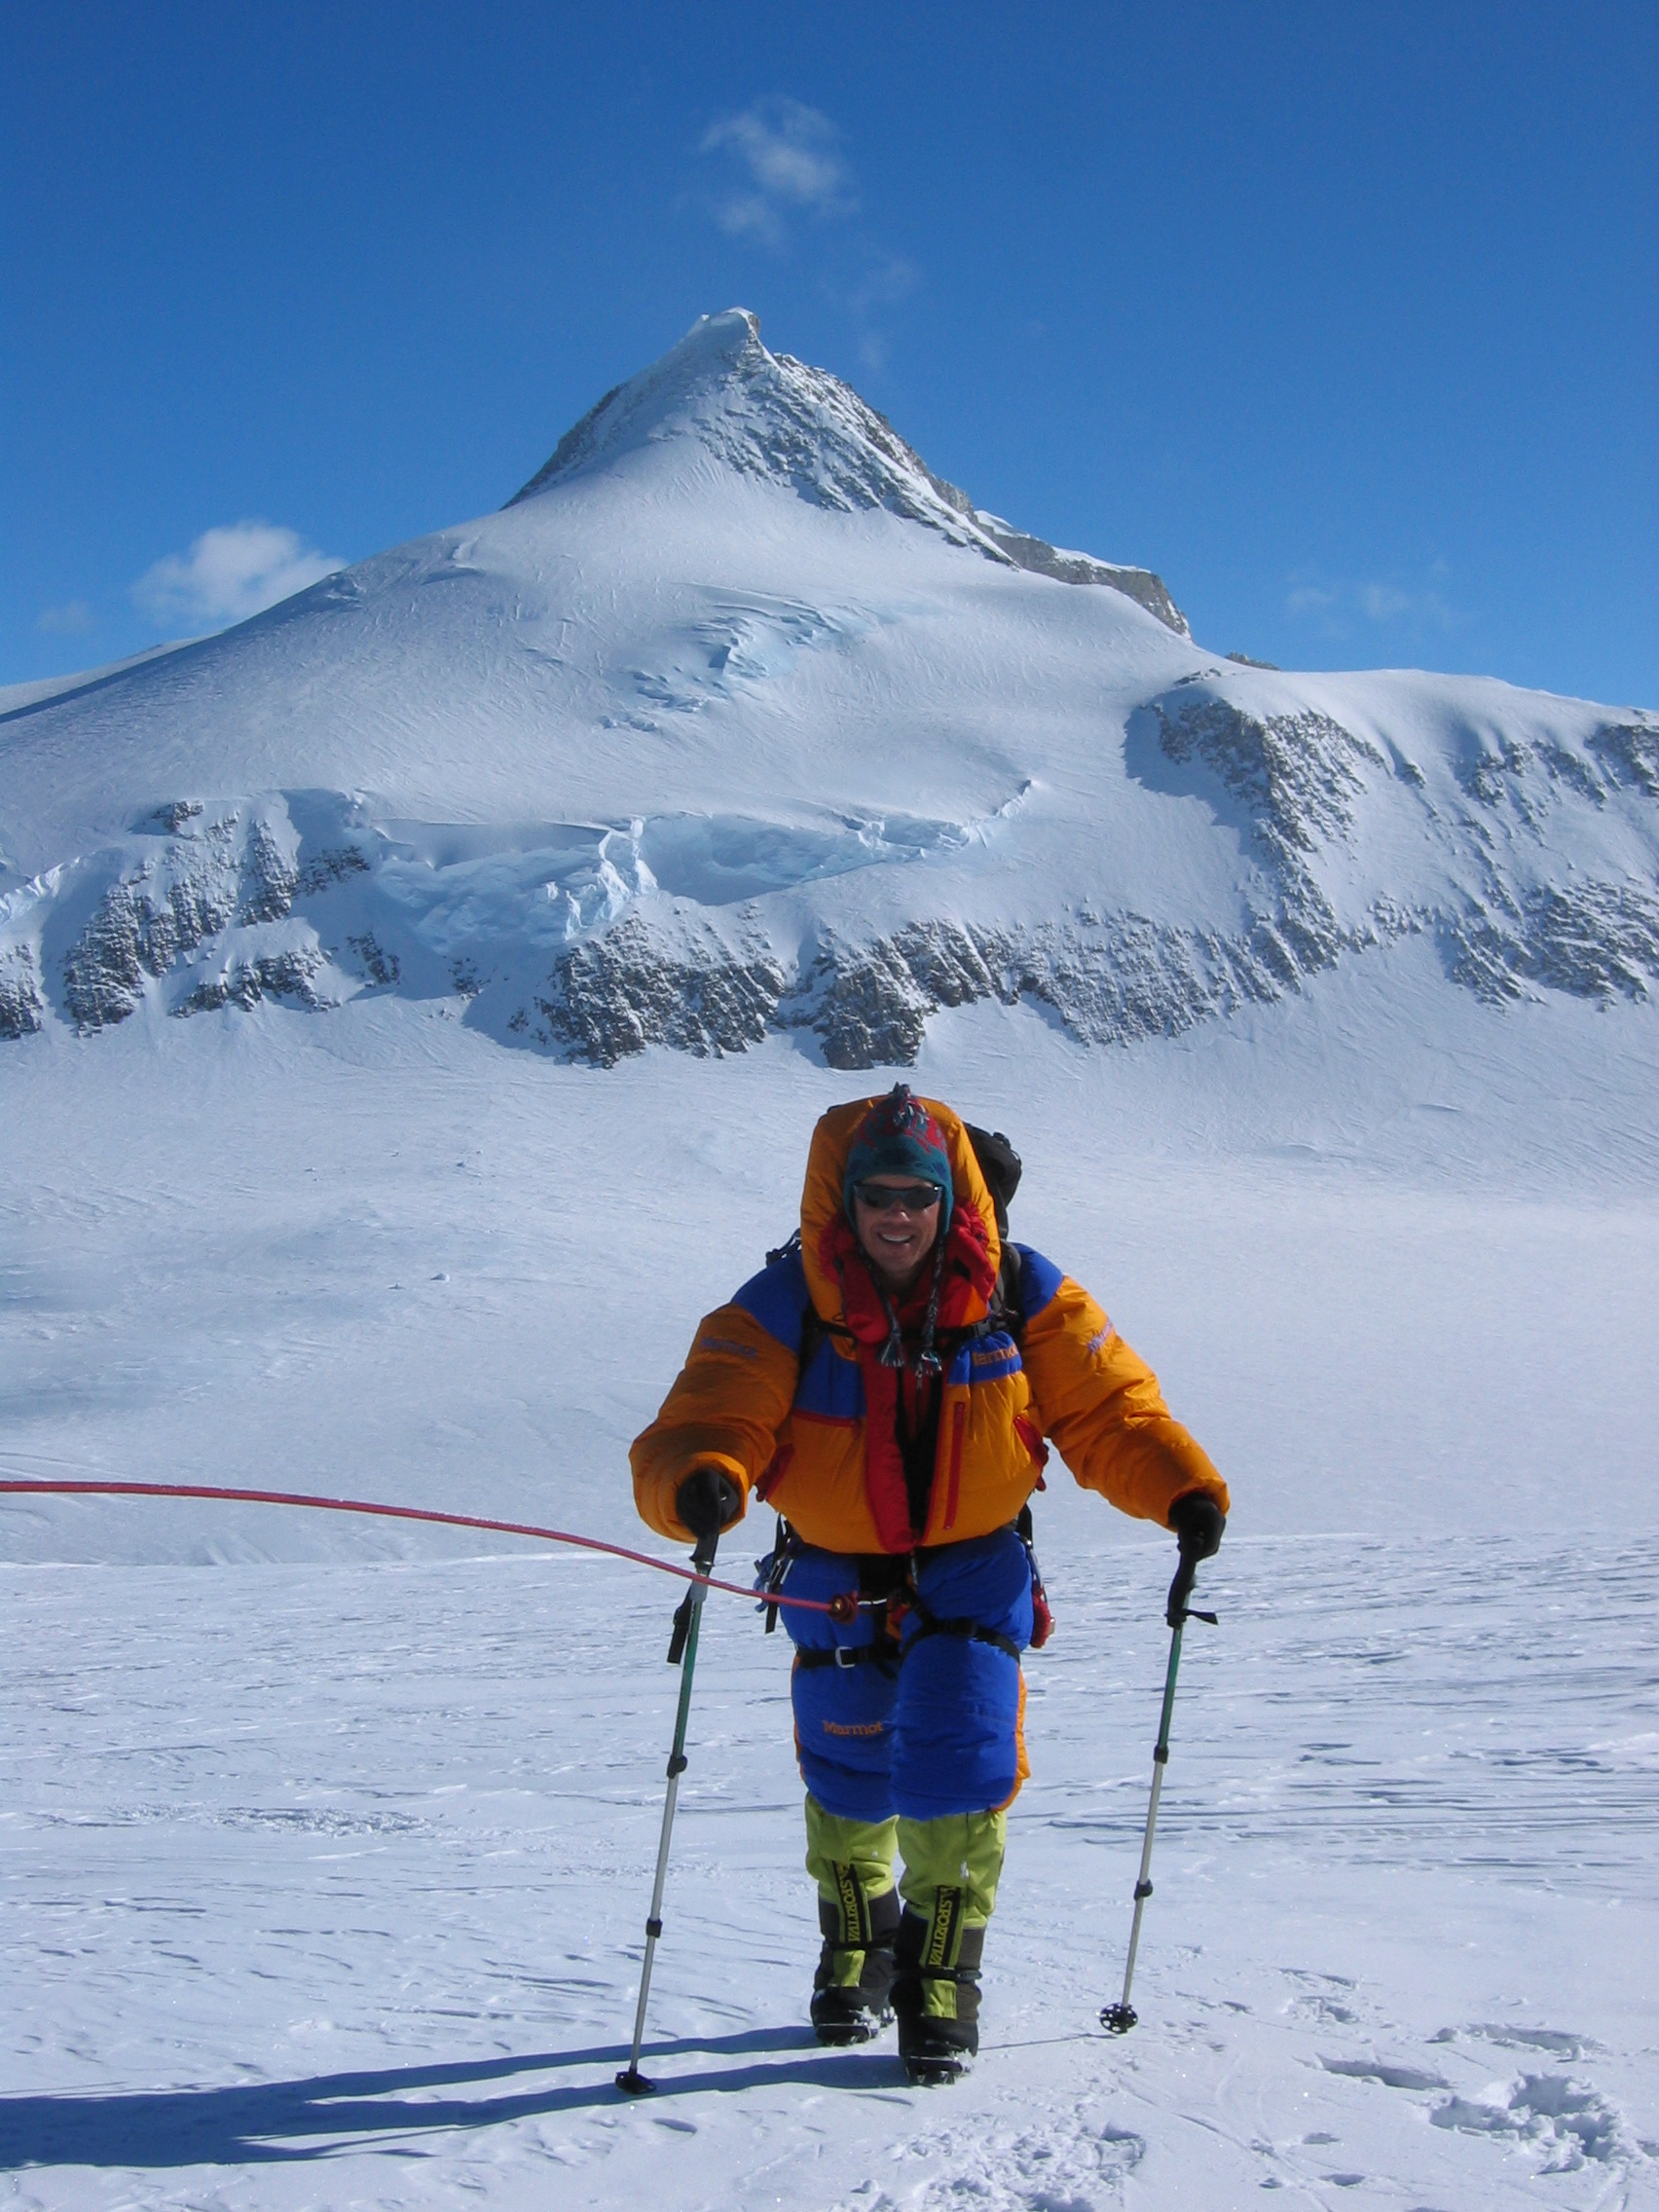 Approaching high camp with Shinn in the background (from previous expedition)